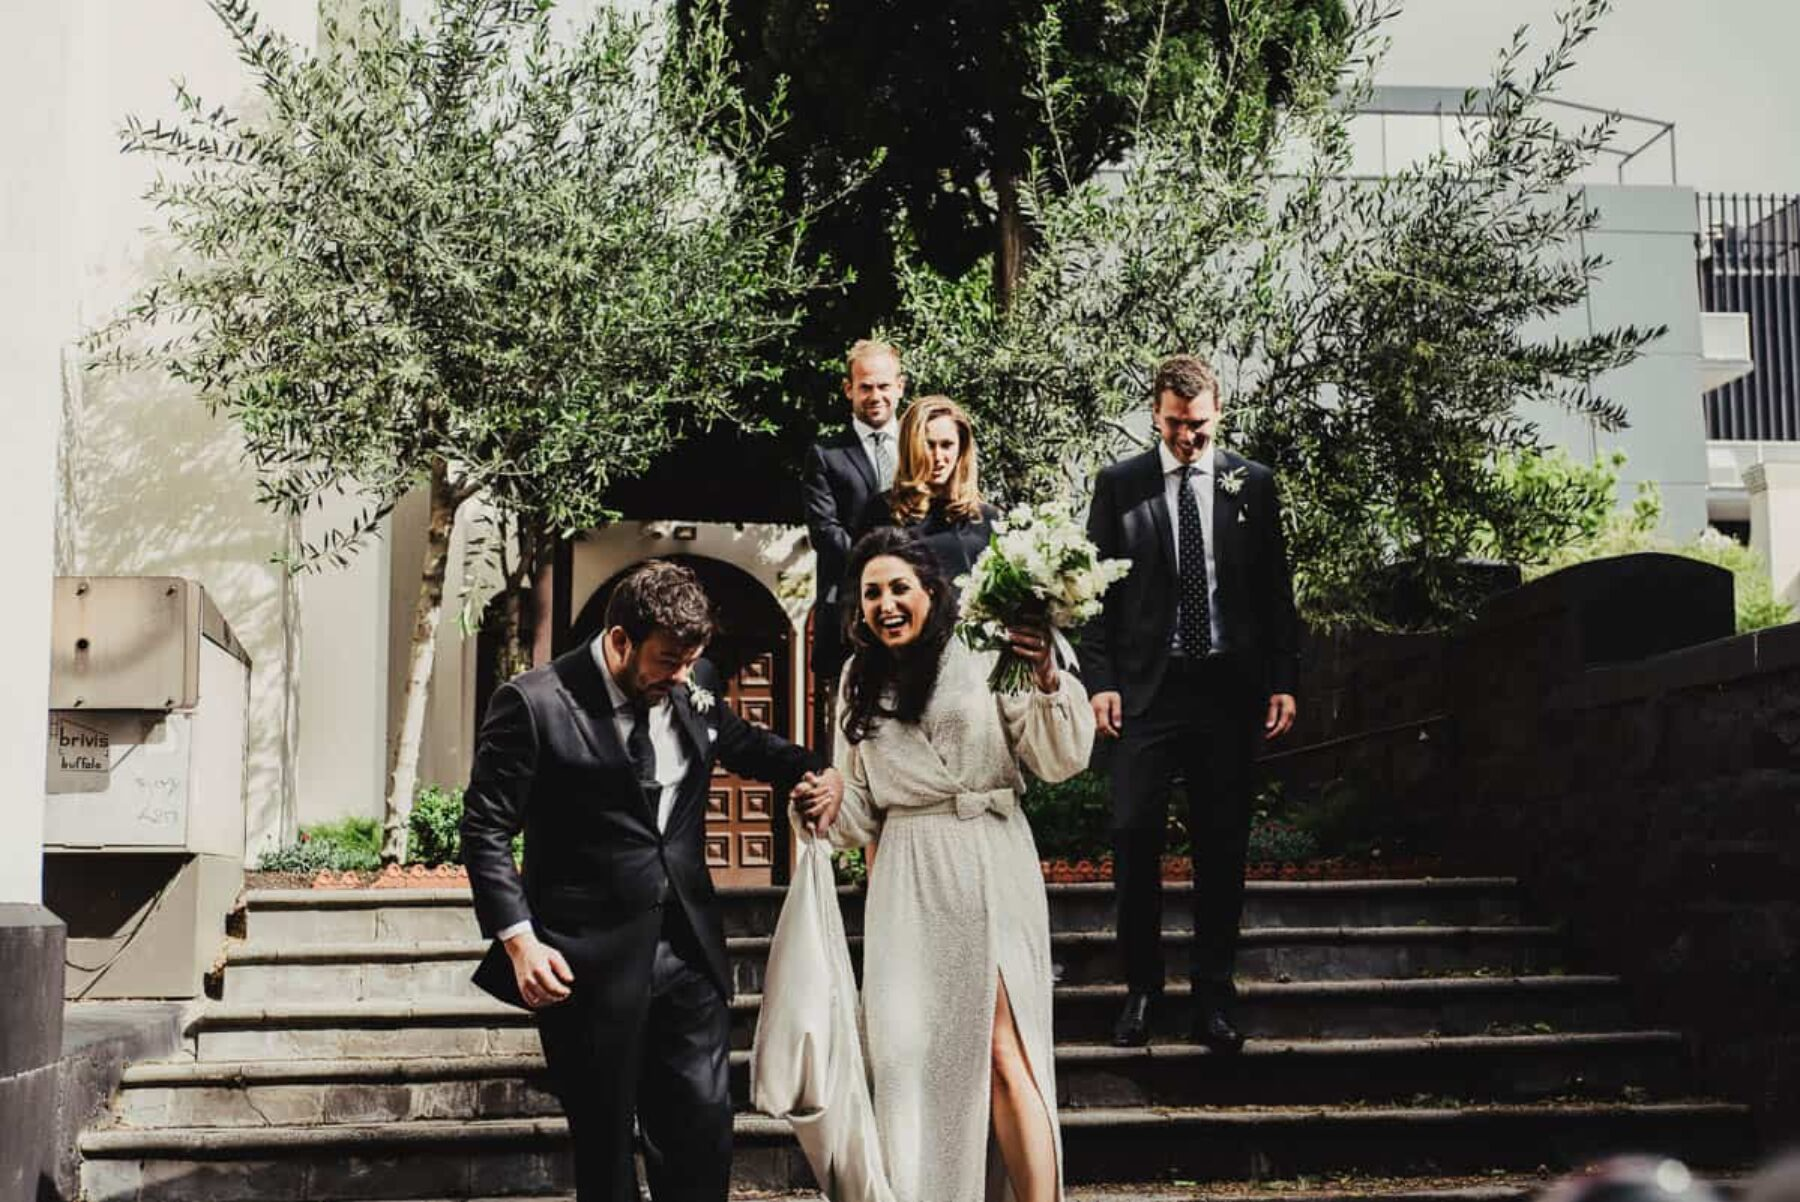 Greek Orthodox Church wedding Melbourne - photography by Daniel Brannan